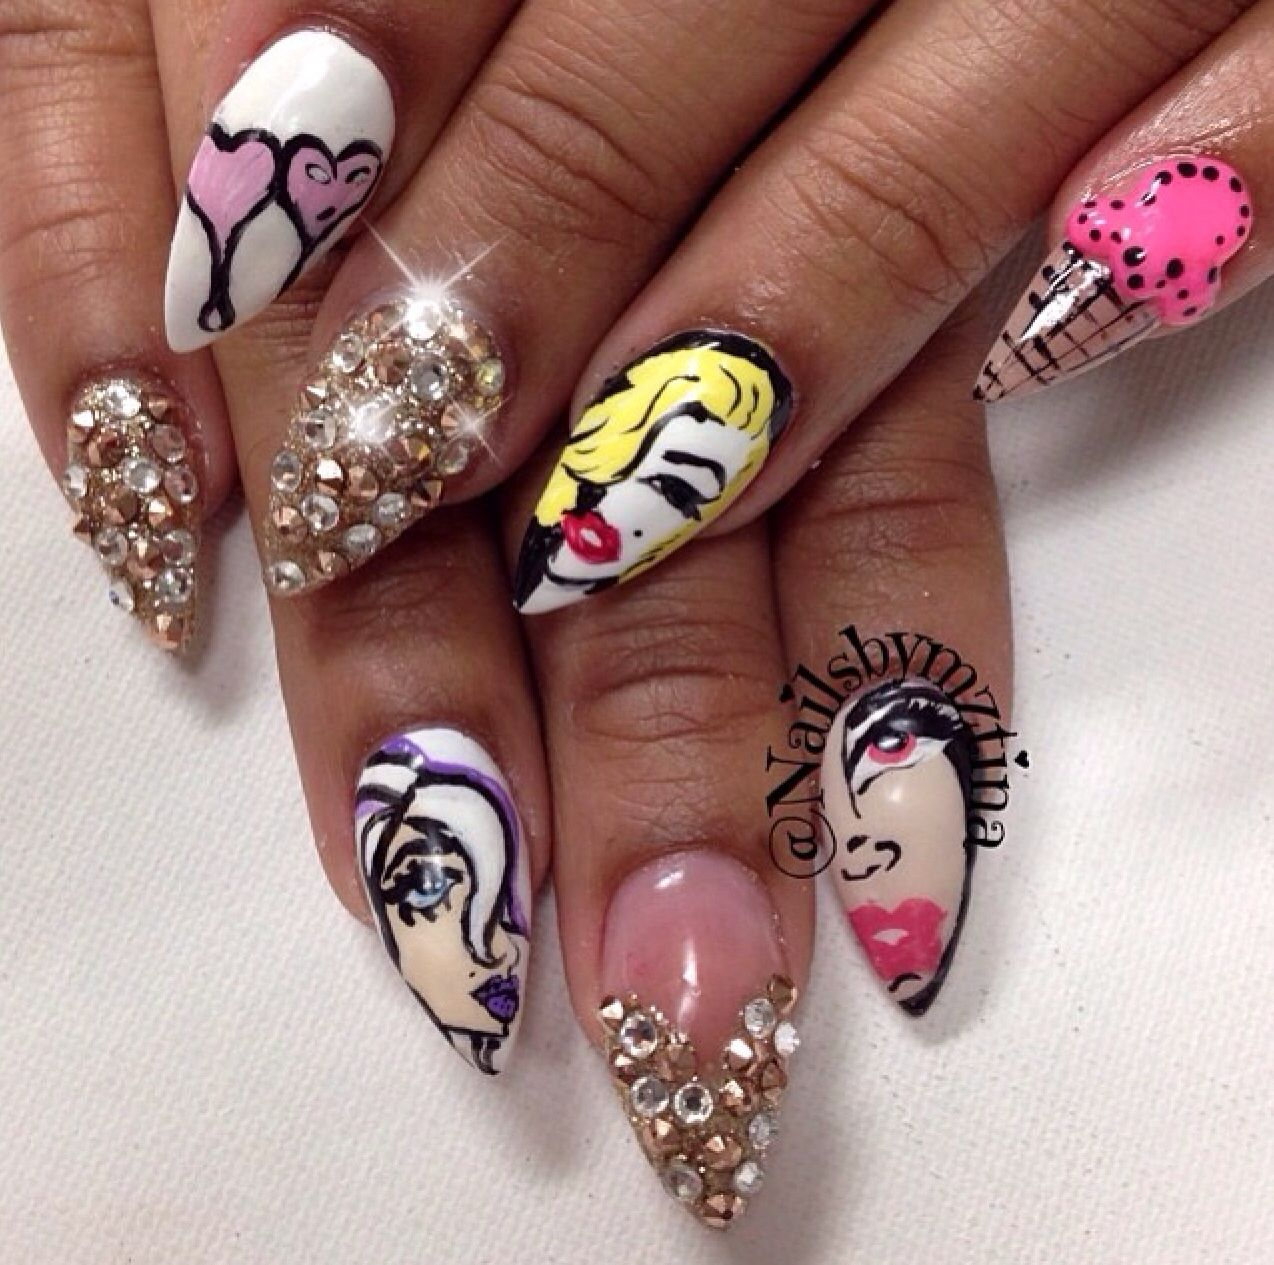 These designs are sick, I hate the stiletto shape but these nails ...